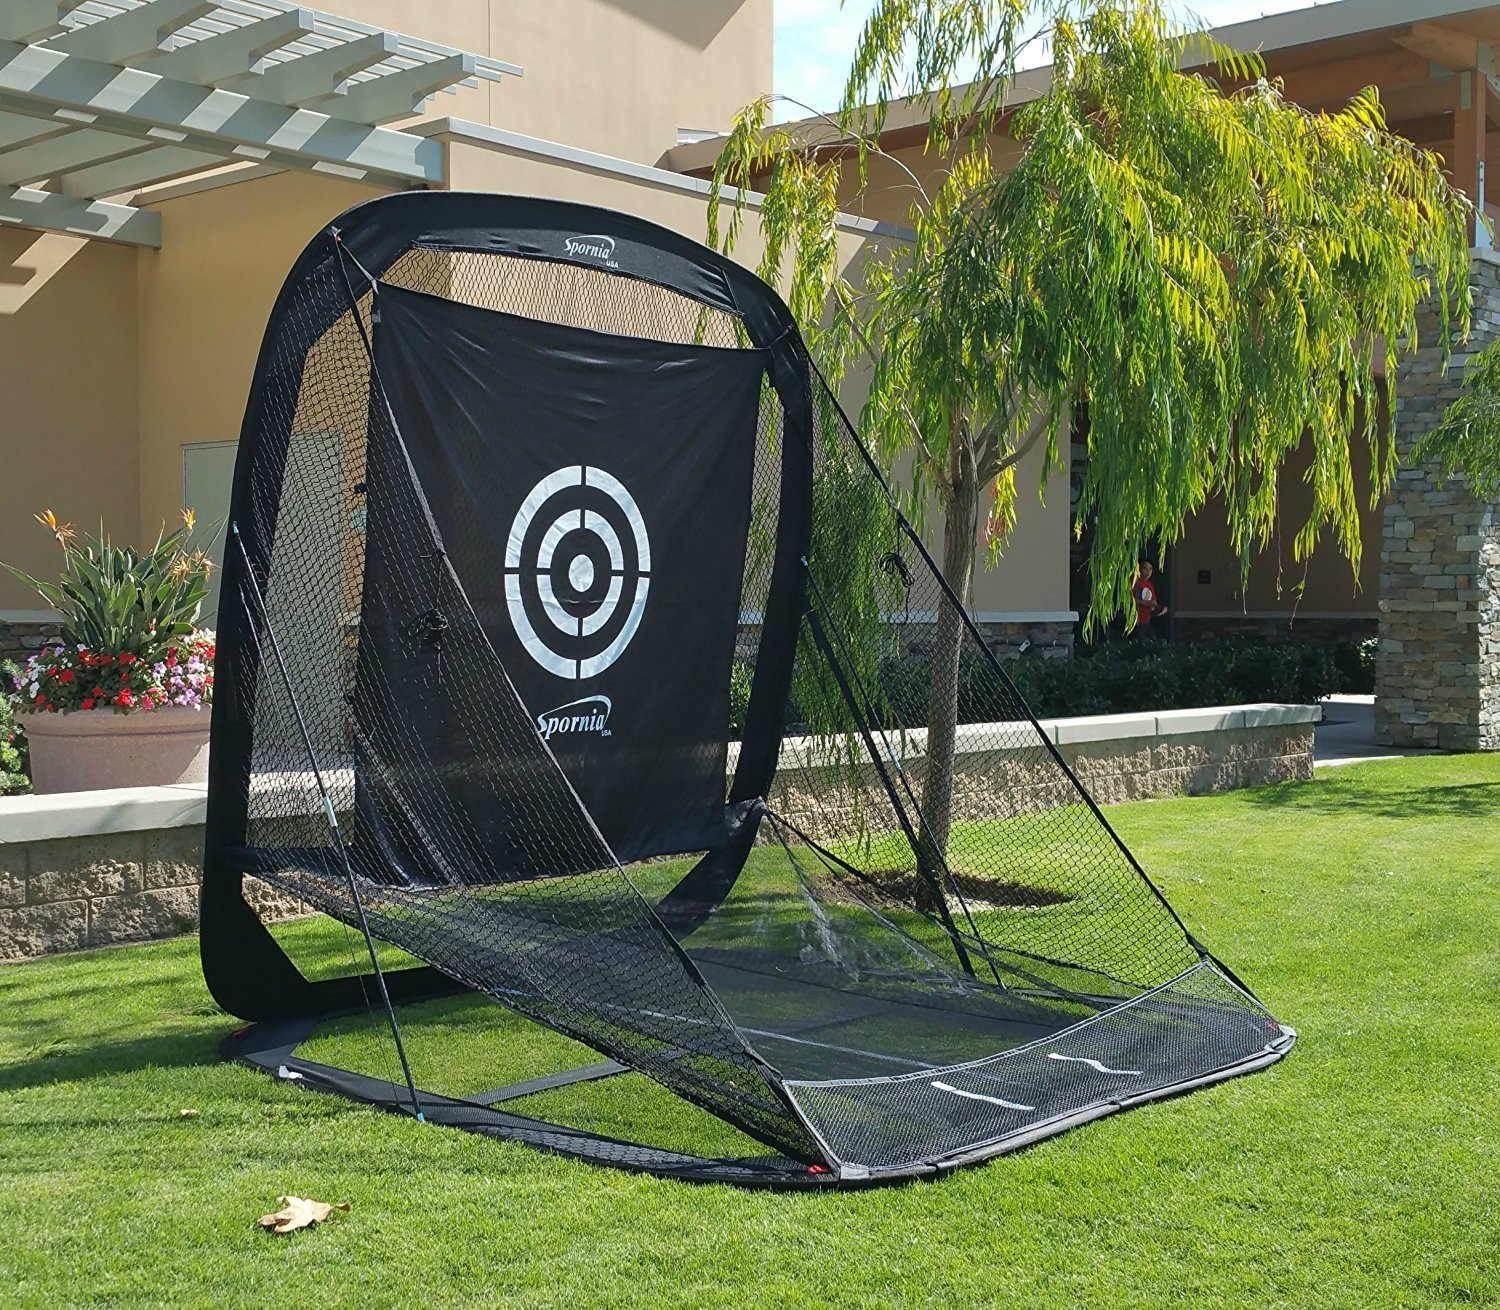 Spornia SPG-5 Golf Practice Net- Automatic Ball Return System with Target sheet, Two Side Barrier, and Chipping Target by Spornia (Image #2)